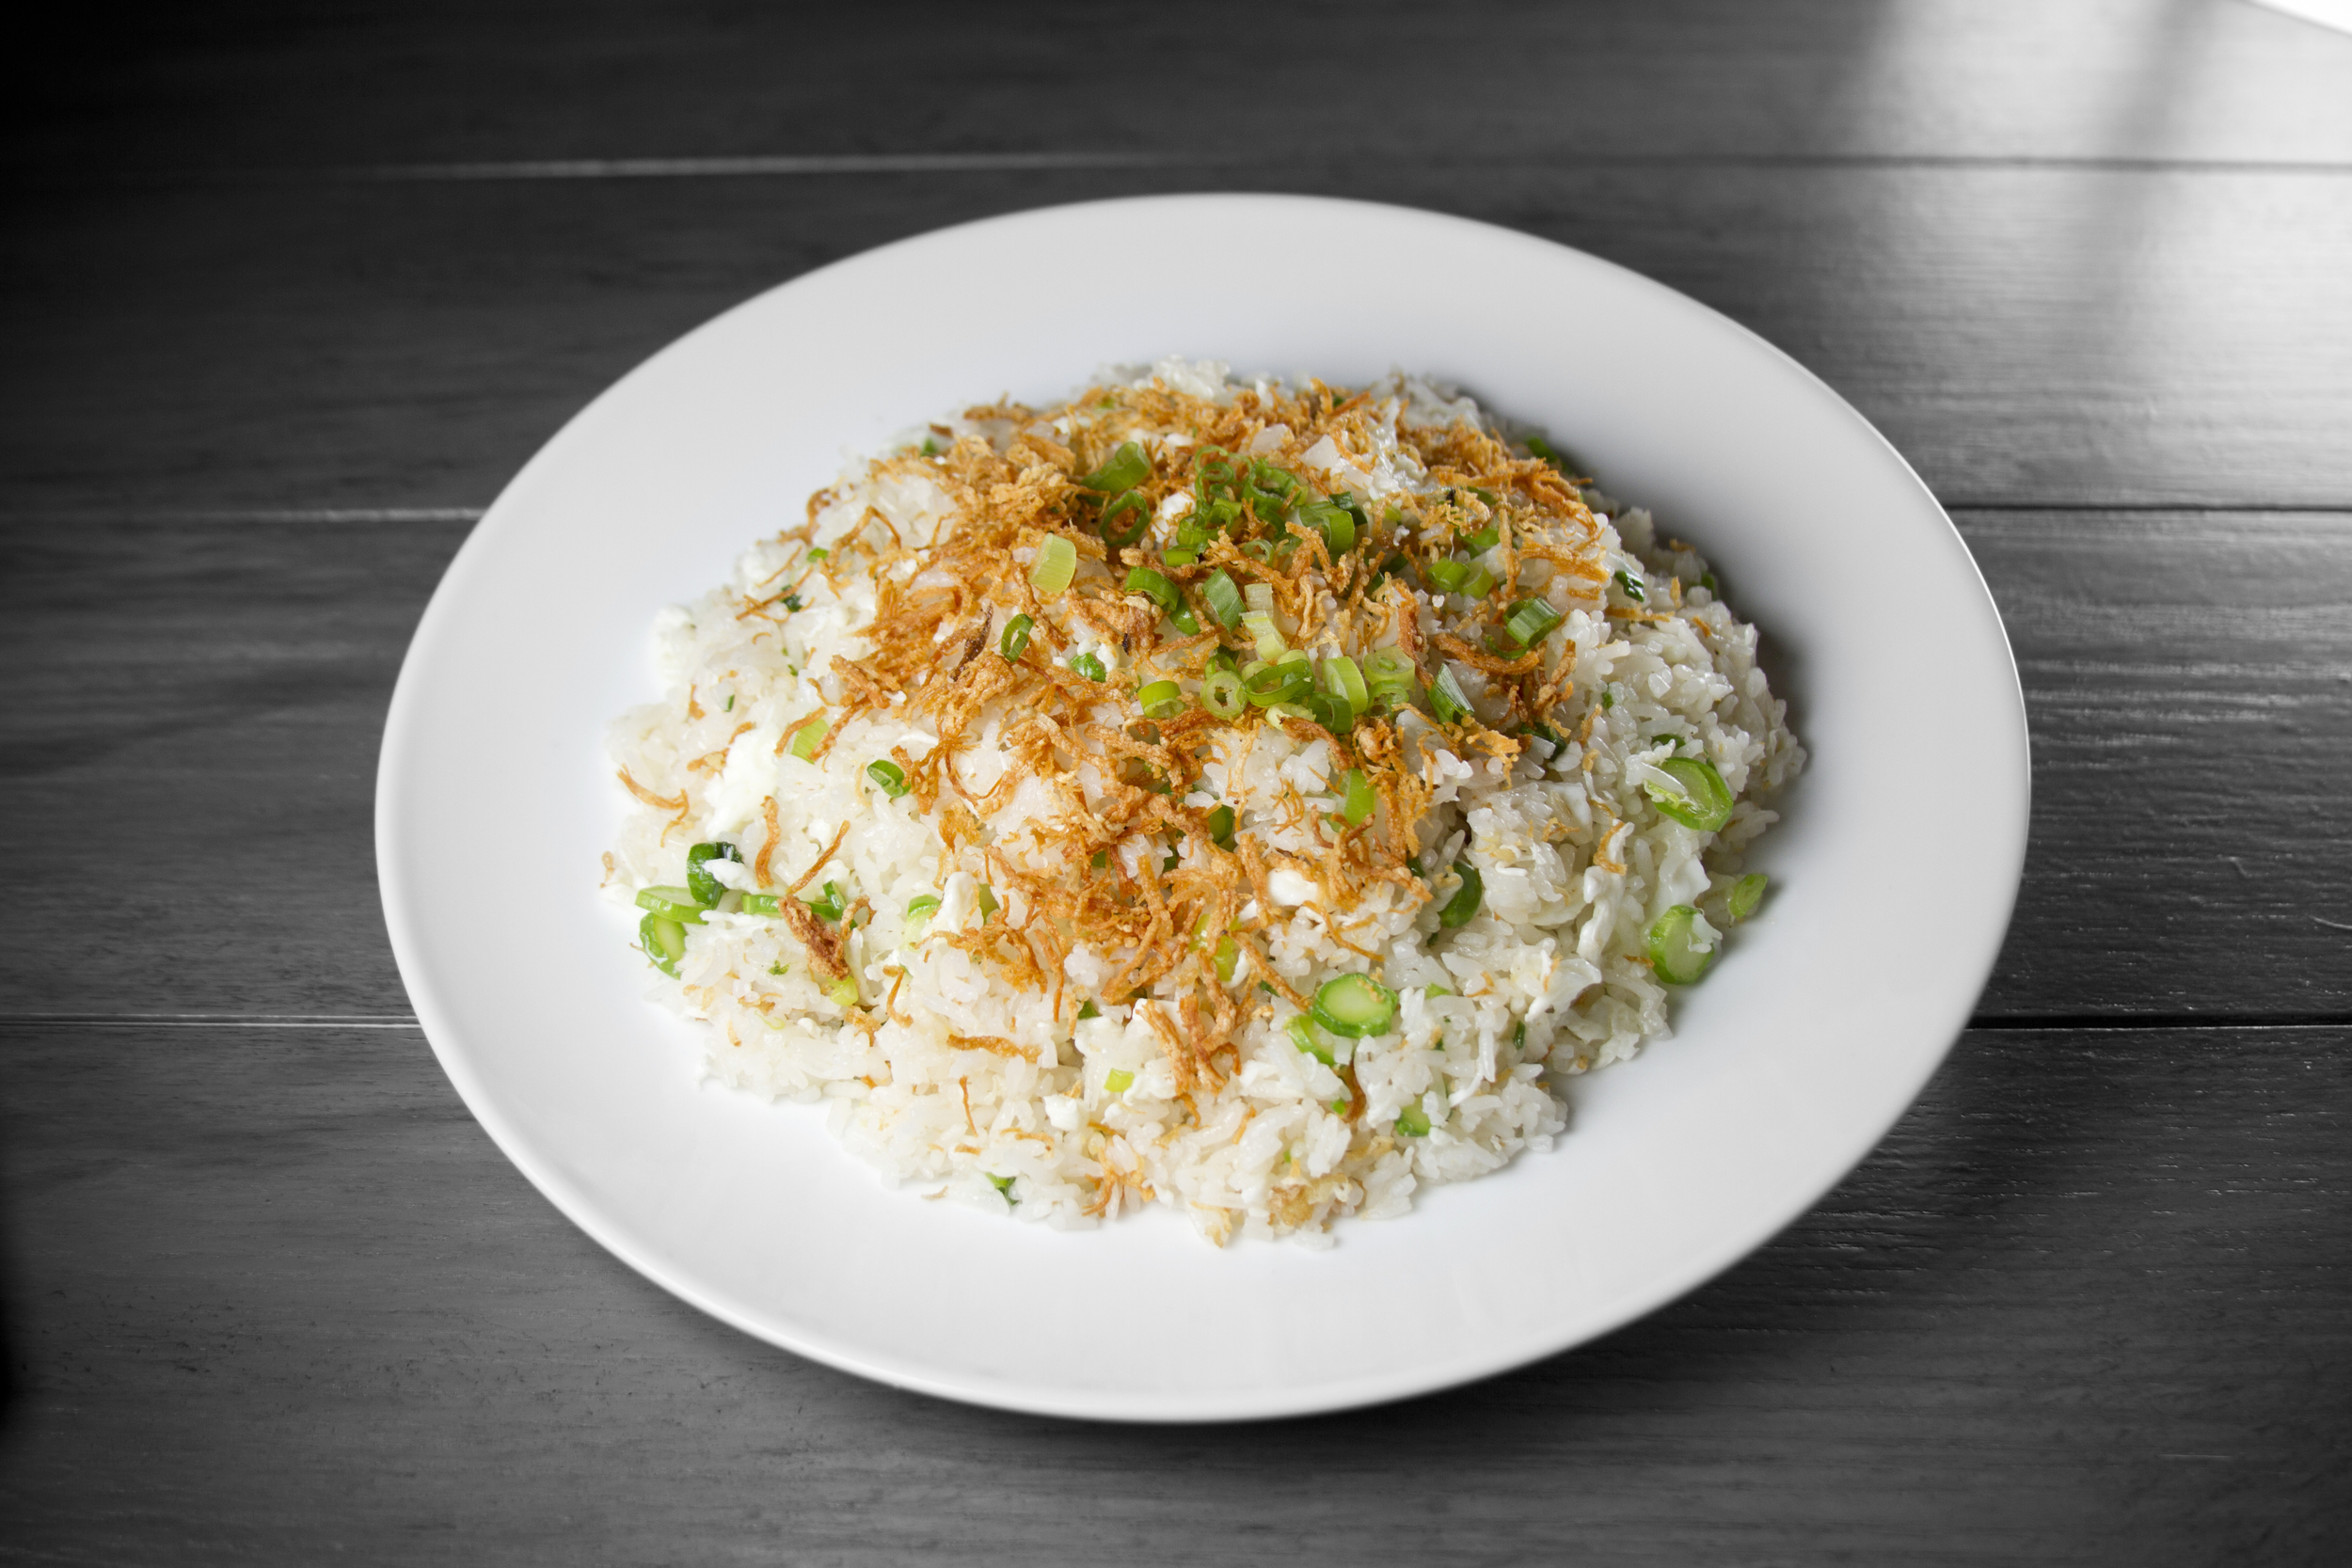 Dried Scallop & Egg White Fried Rice